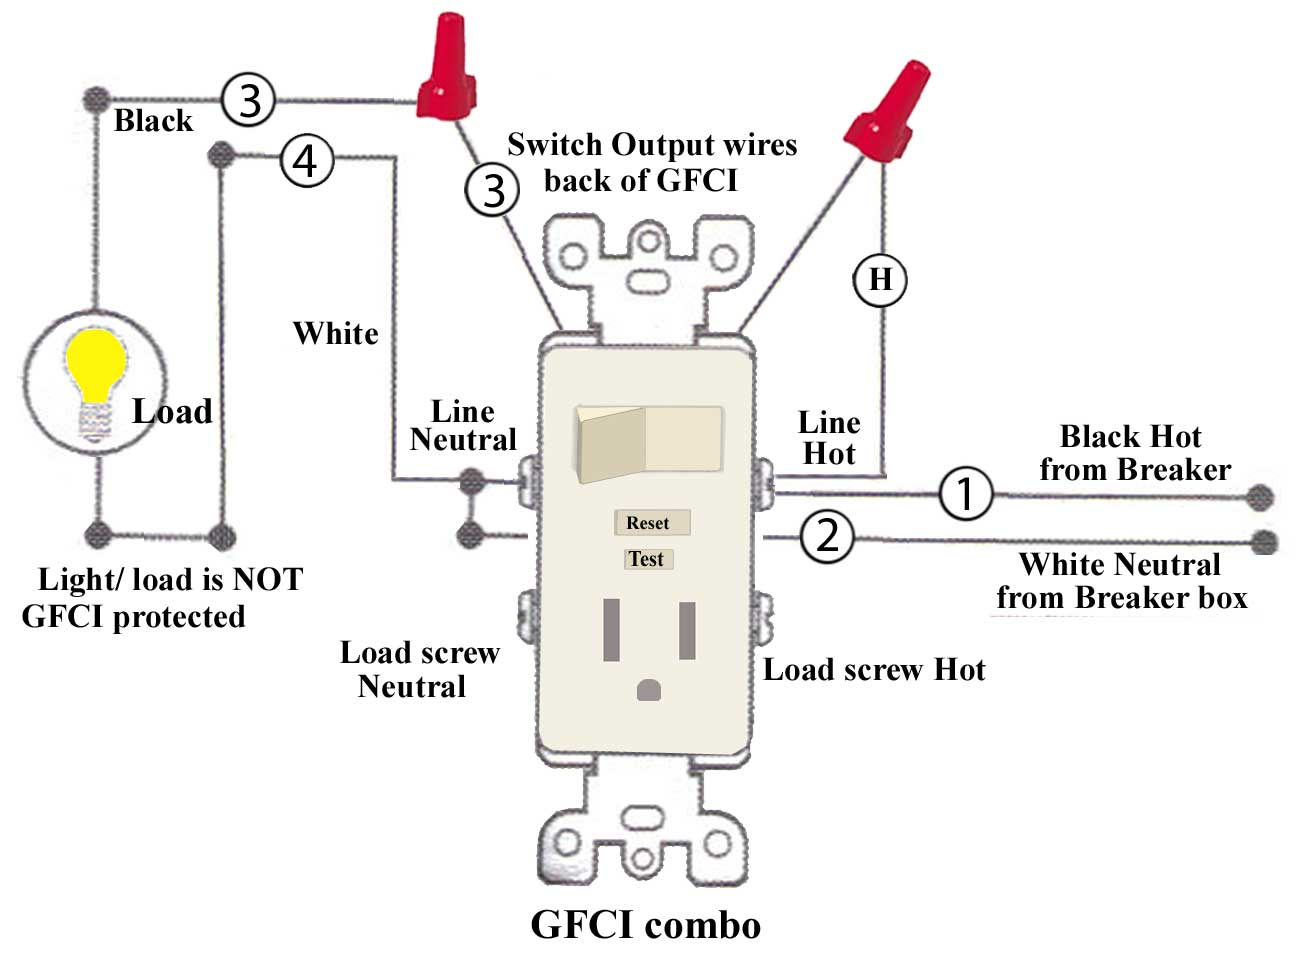 GFCI combo wiring 4 how to install and troubleshoot gfci leviton gfci receptacle wiring diagram at creativeand.co